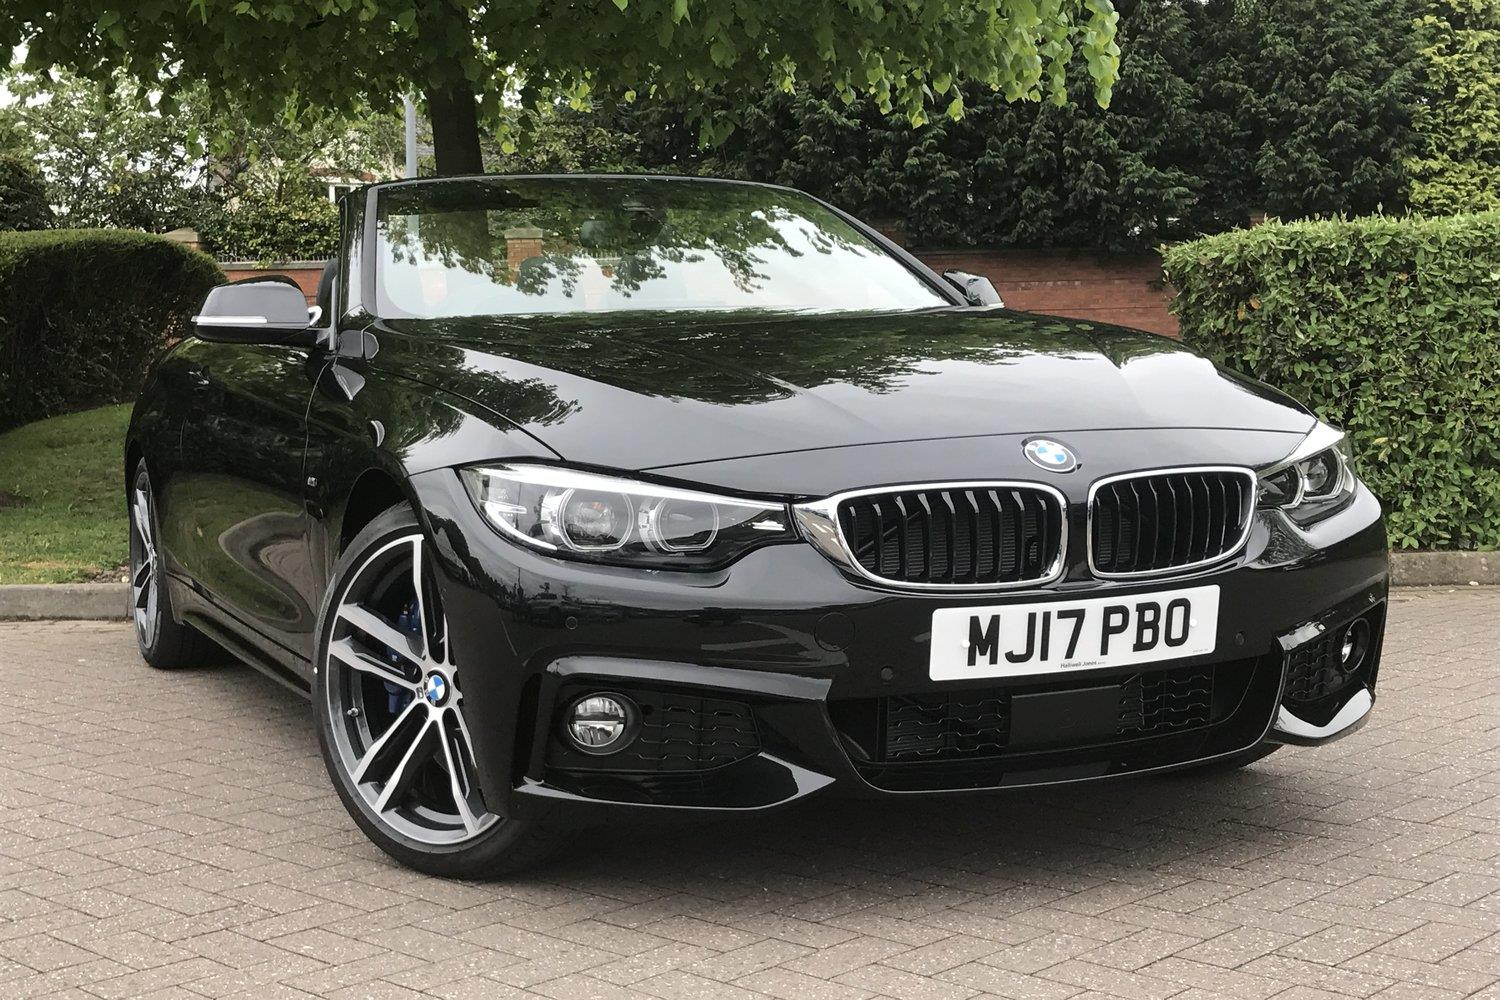 BMW 4 Series Convertible MJ17PBO - Image 2